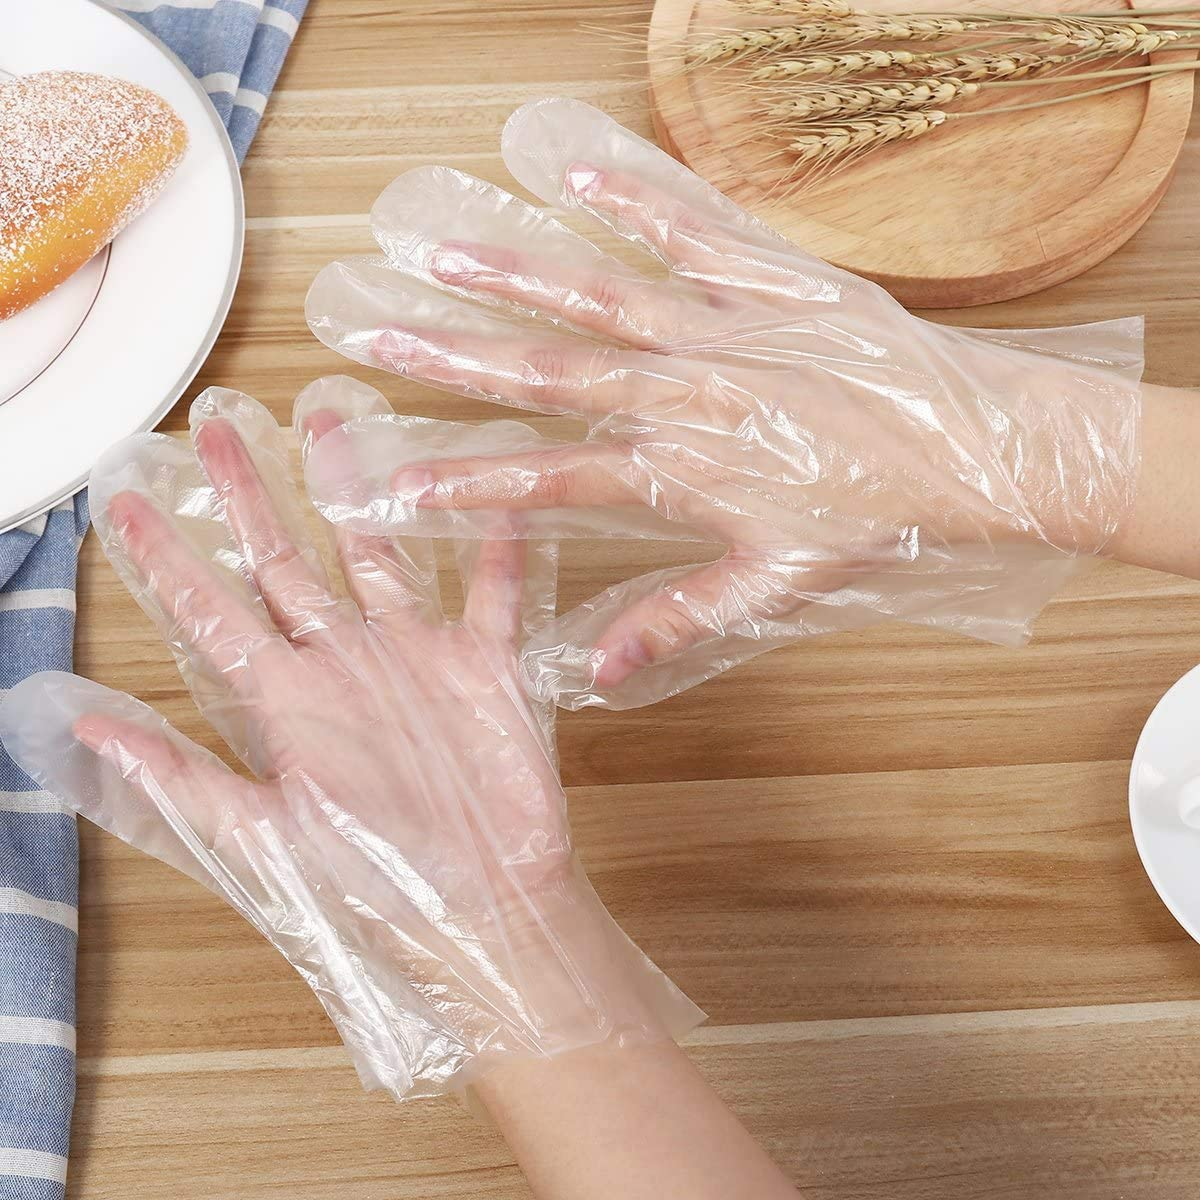 Plastic Service Gloves (500pcs)